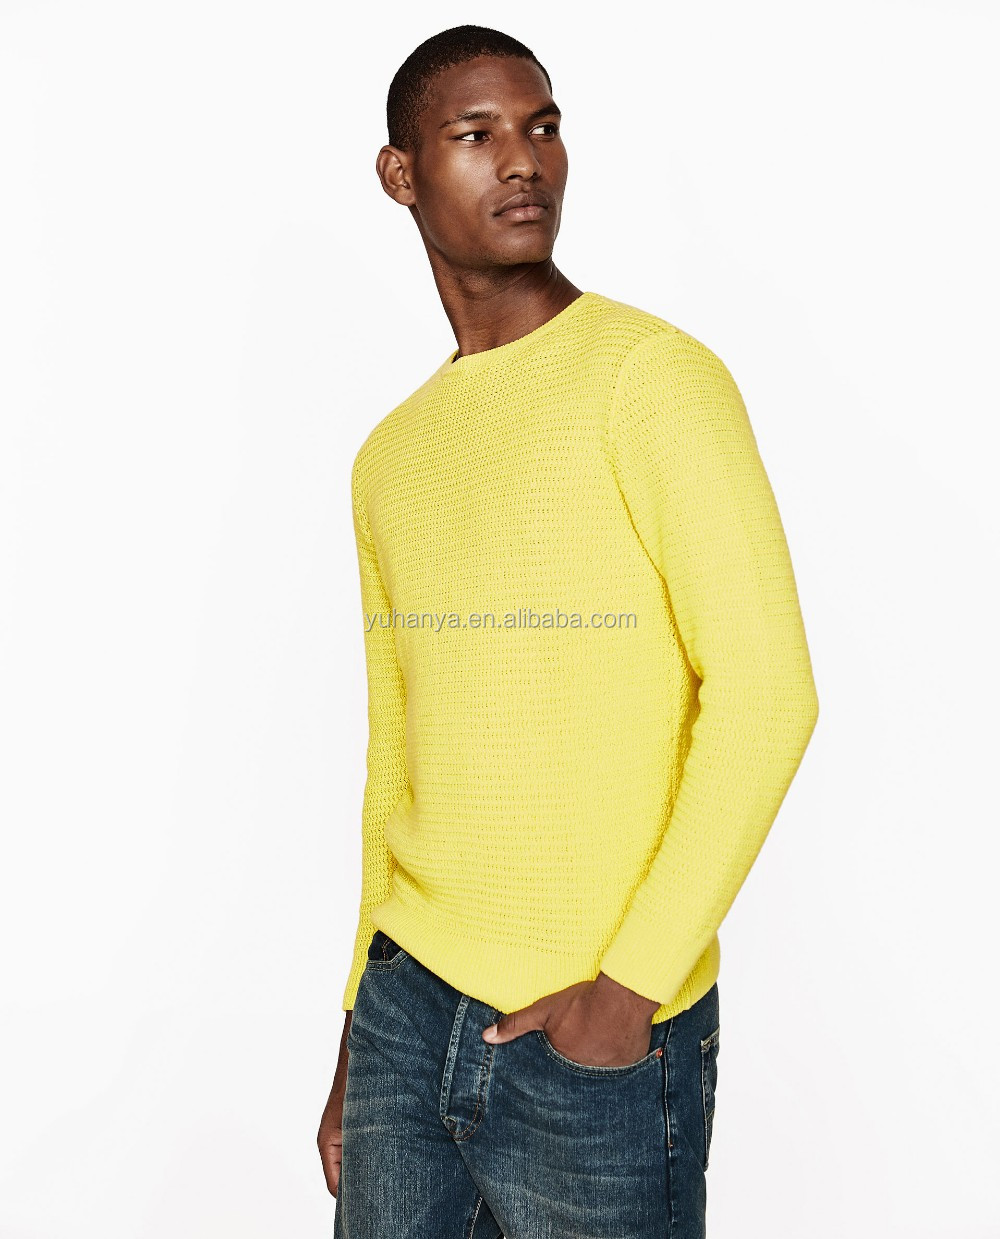 Factory Price Knitted Plain Yellow Pullover Handmade Sweater ...